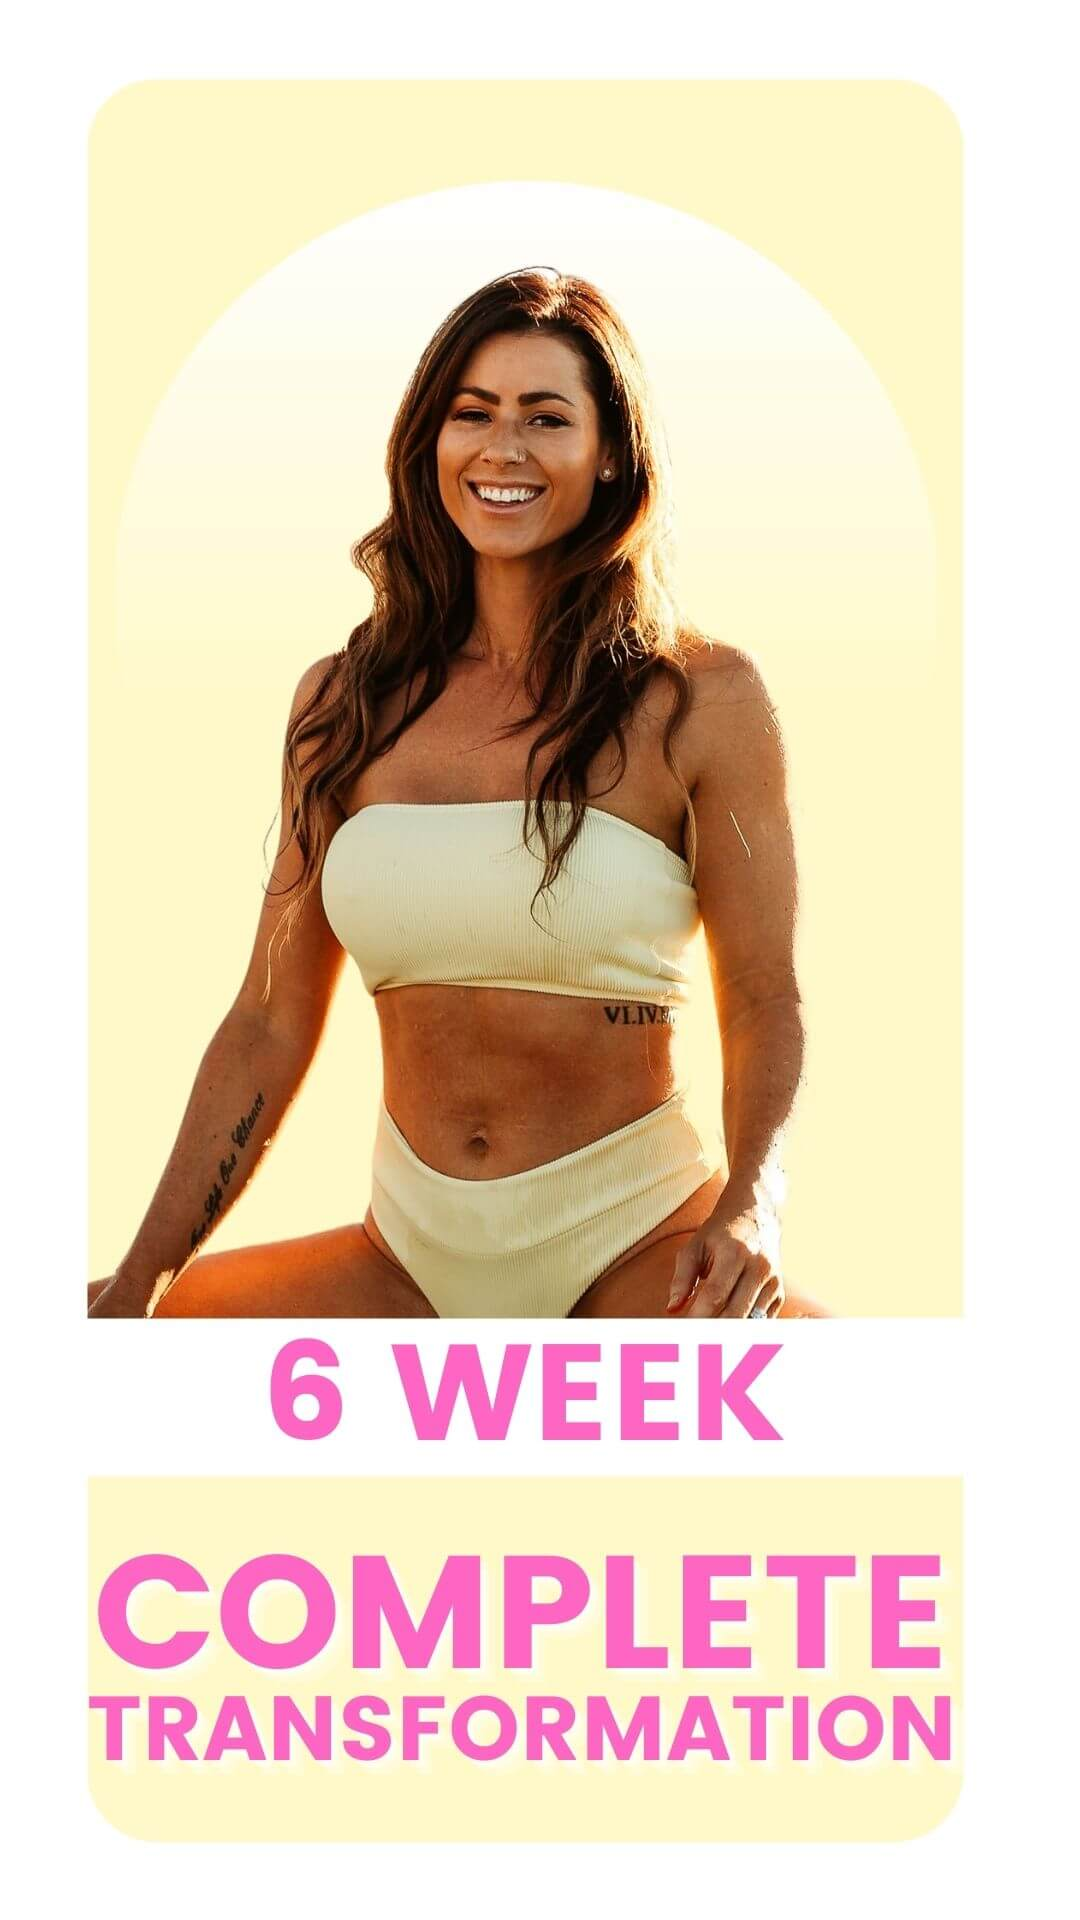 6 week Complete Transformation